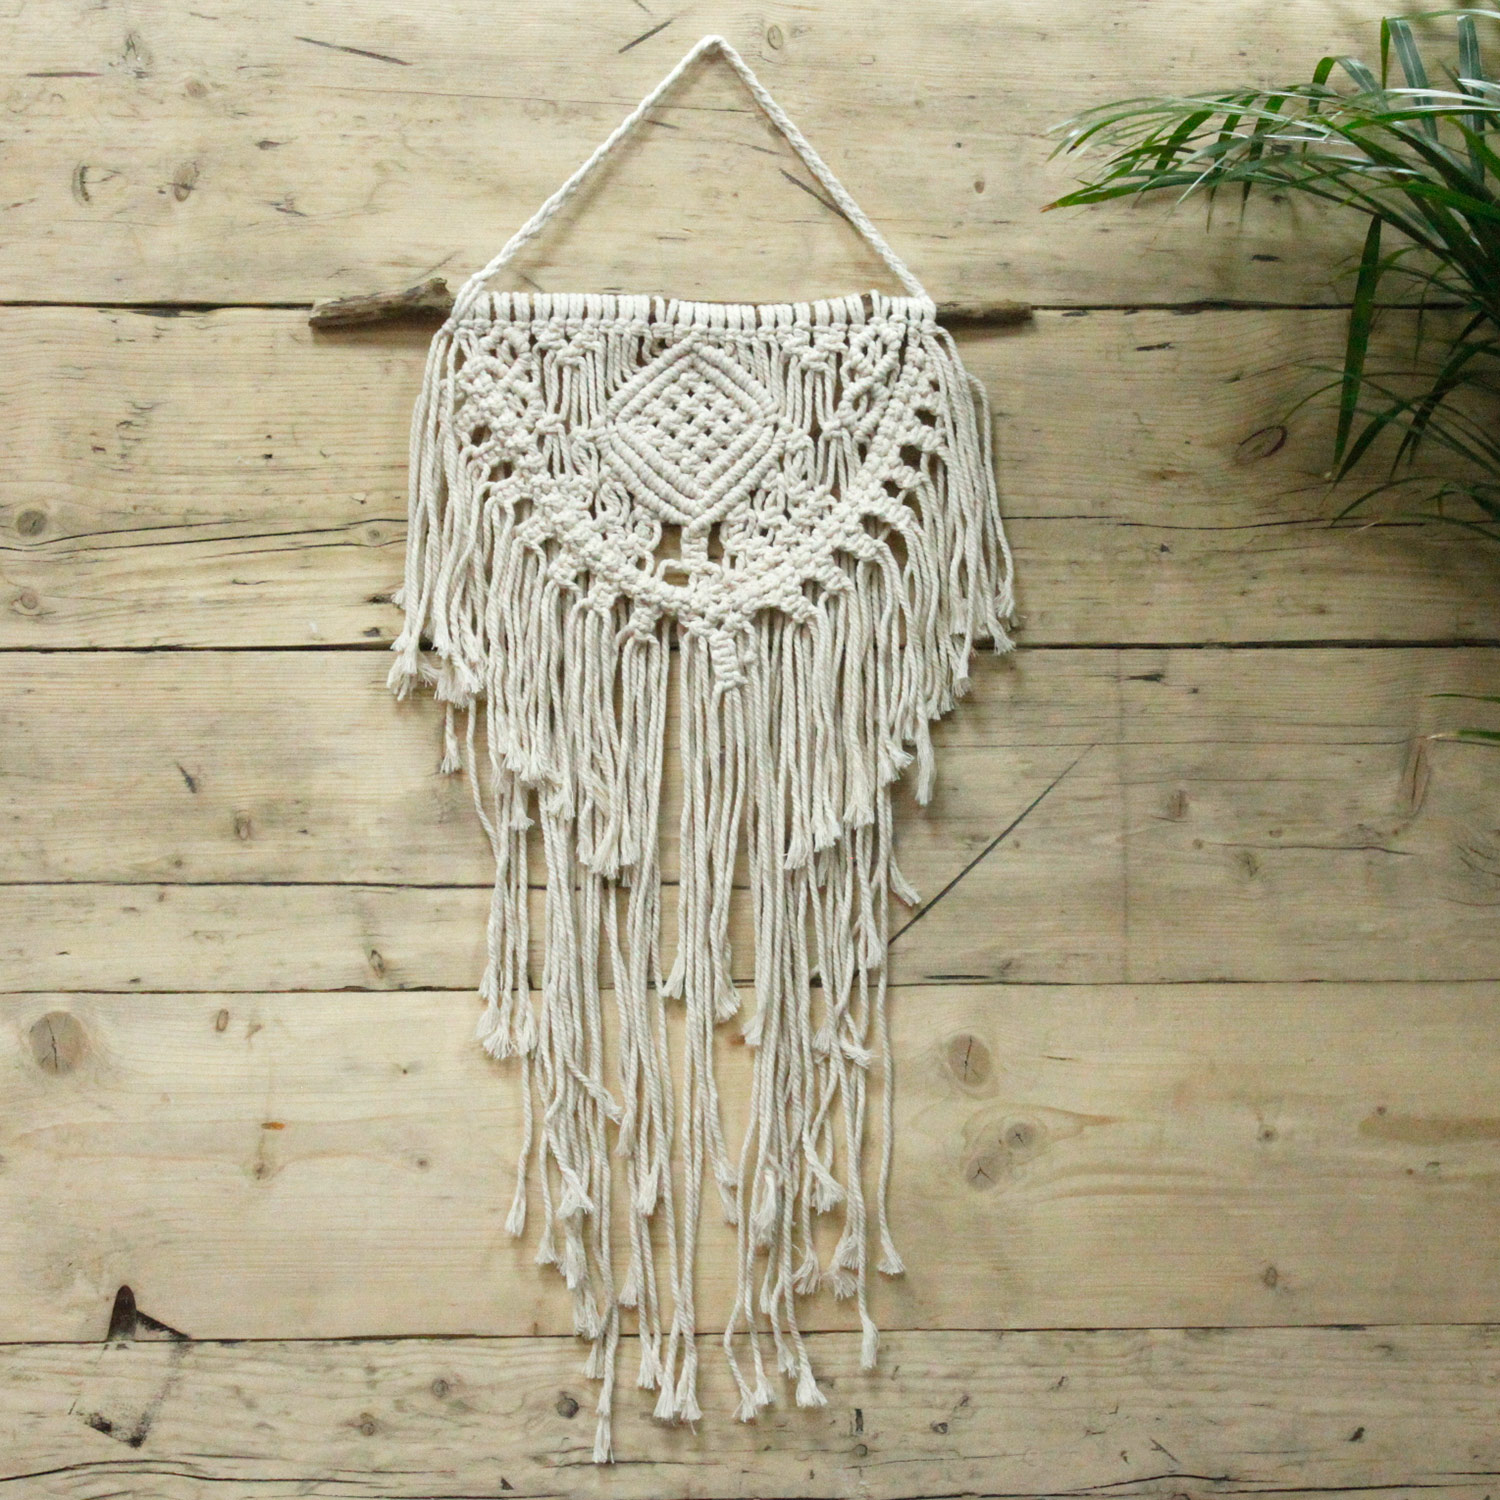 Macrame Wall Hanging - Home & Heart